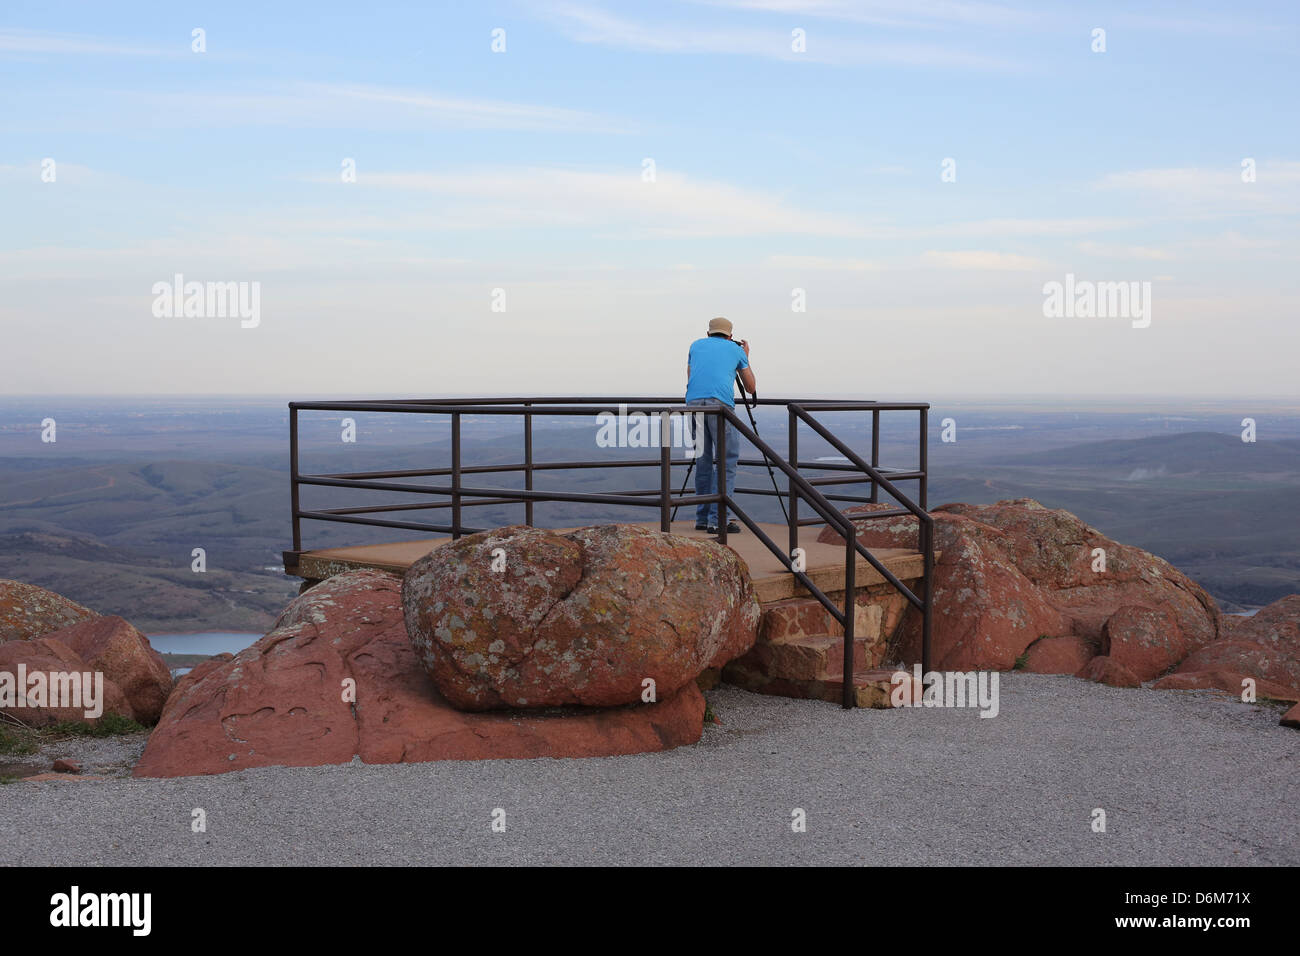 A man taking a photo at the top of Mount Scott in the Wichita Mountains in Oklahoma. - Stock Image